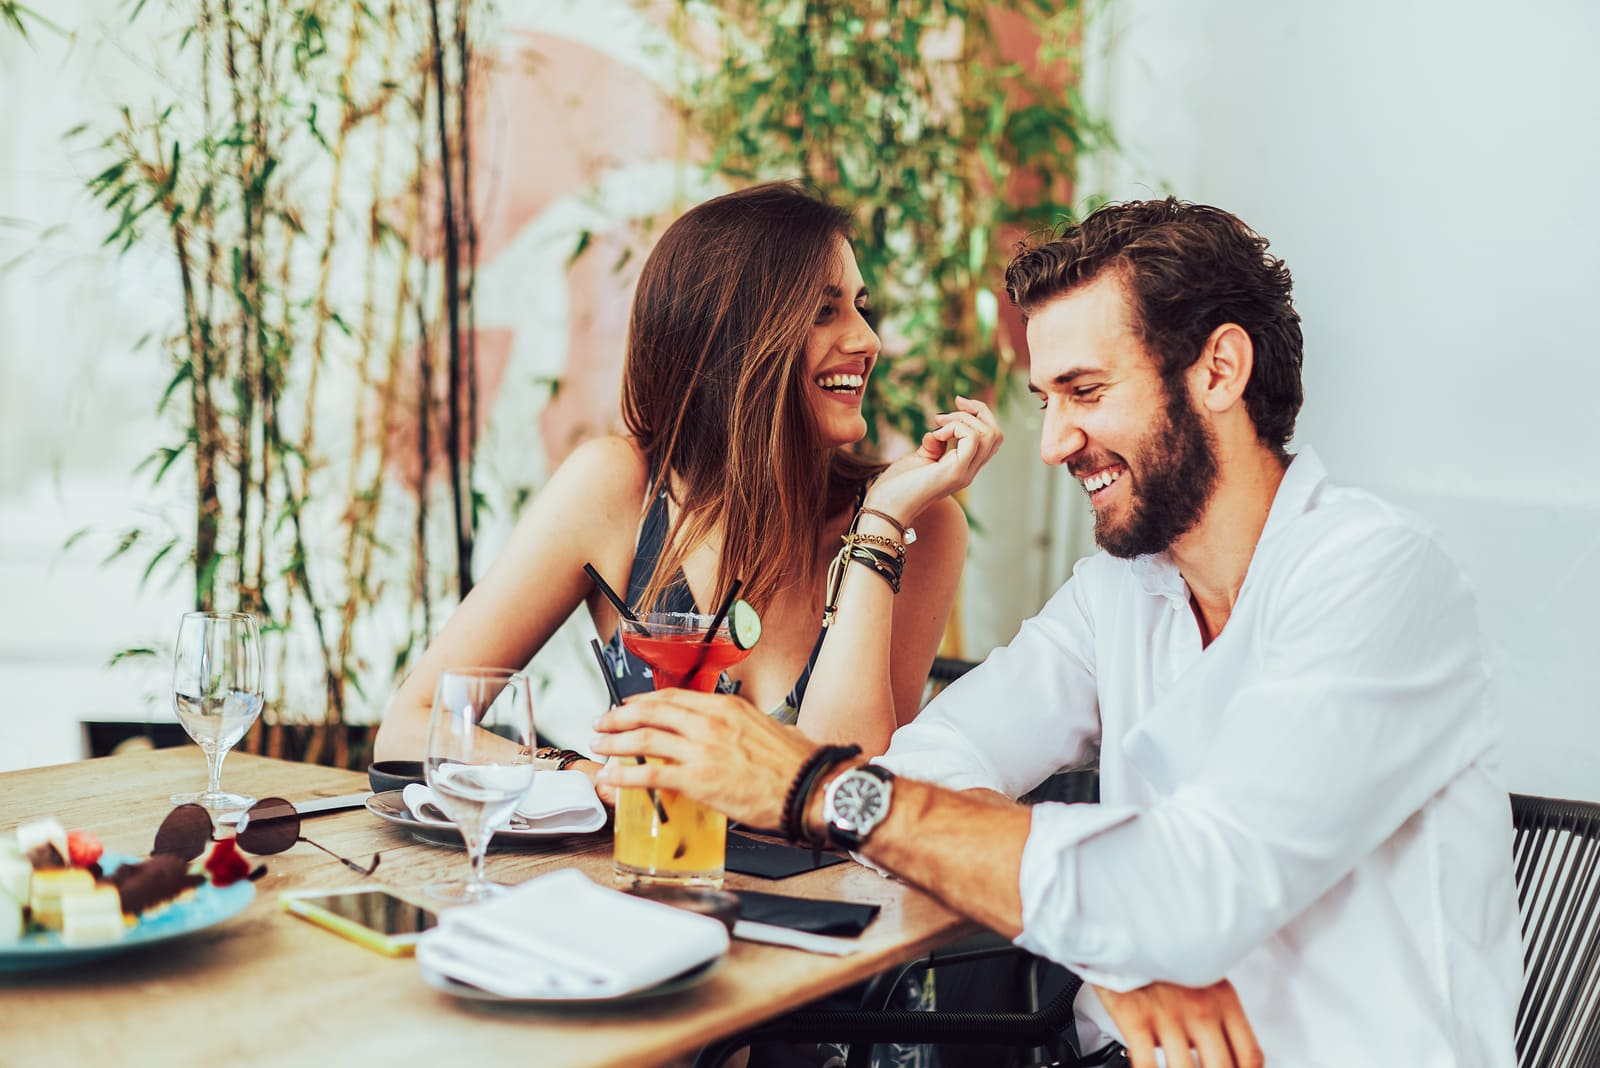 a smiling couple having fun in a cafe